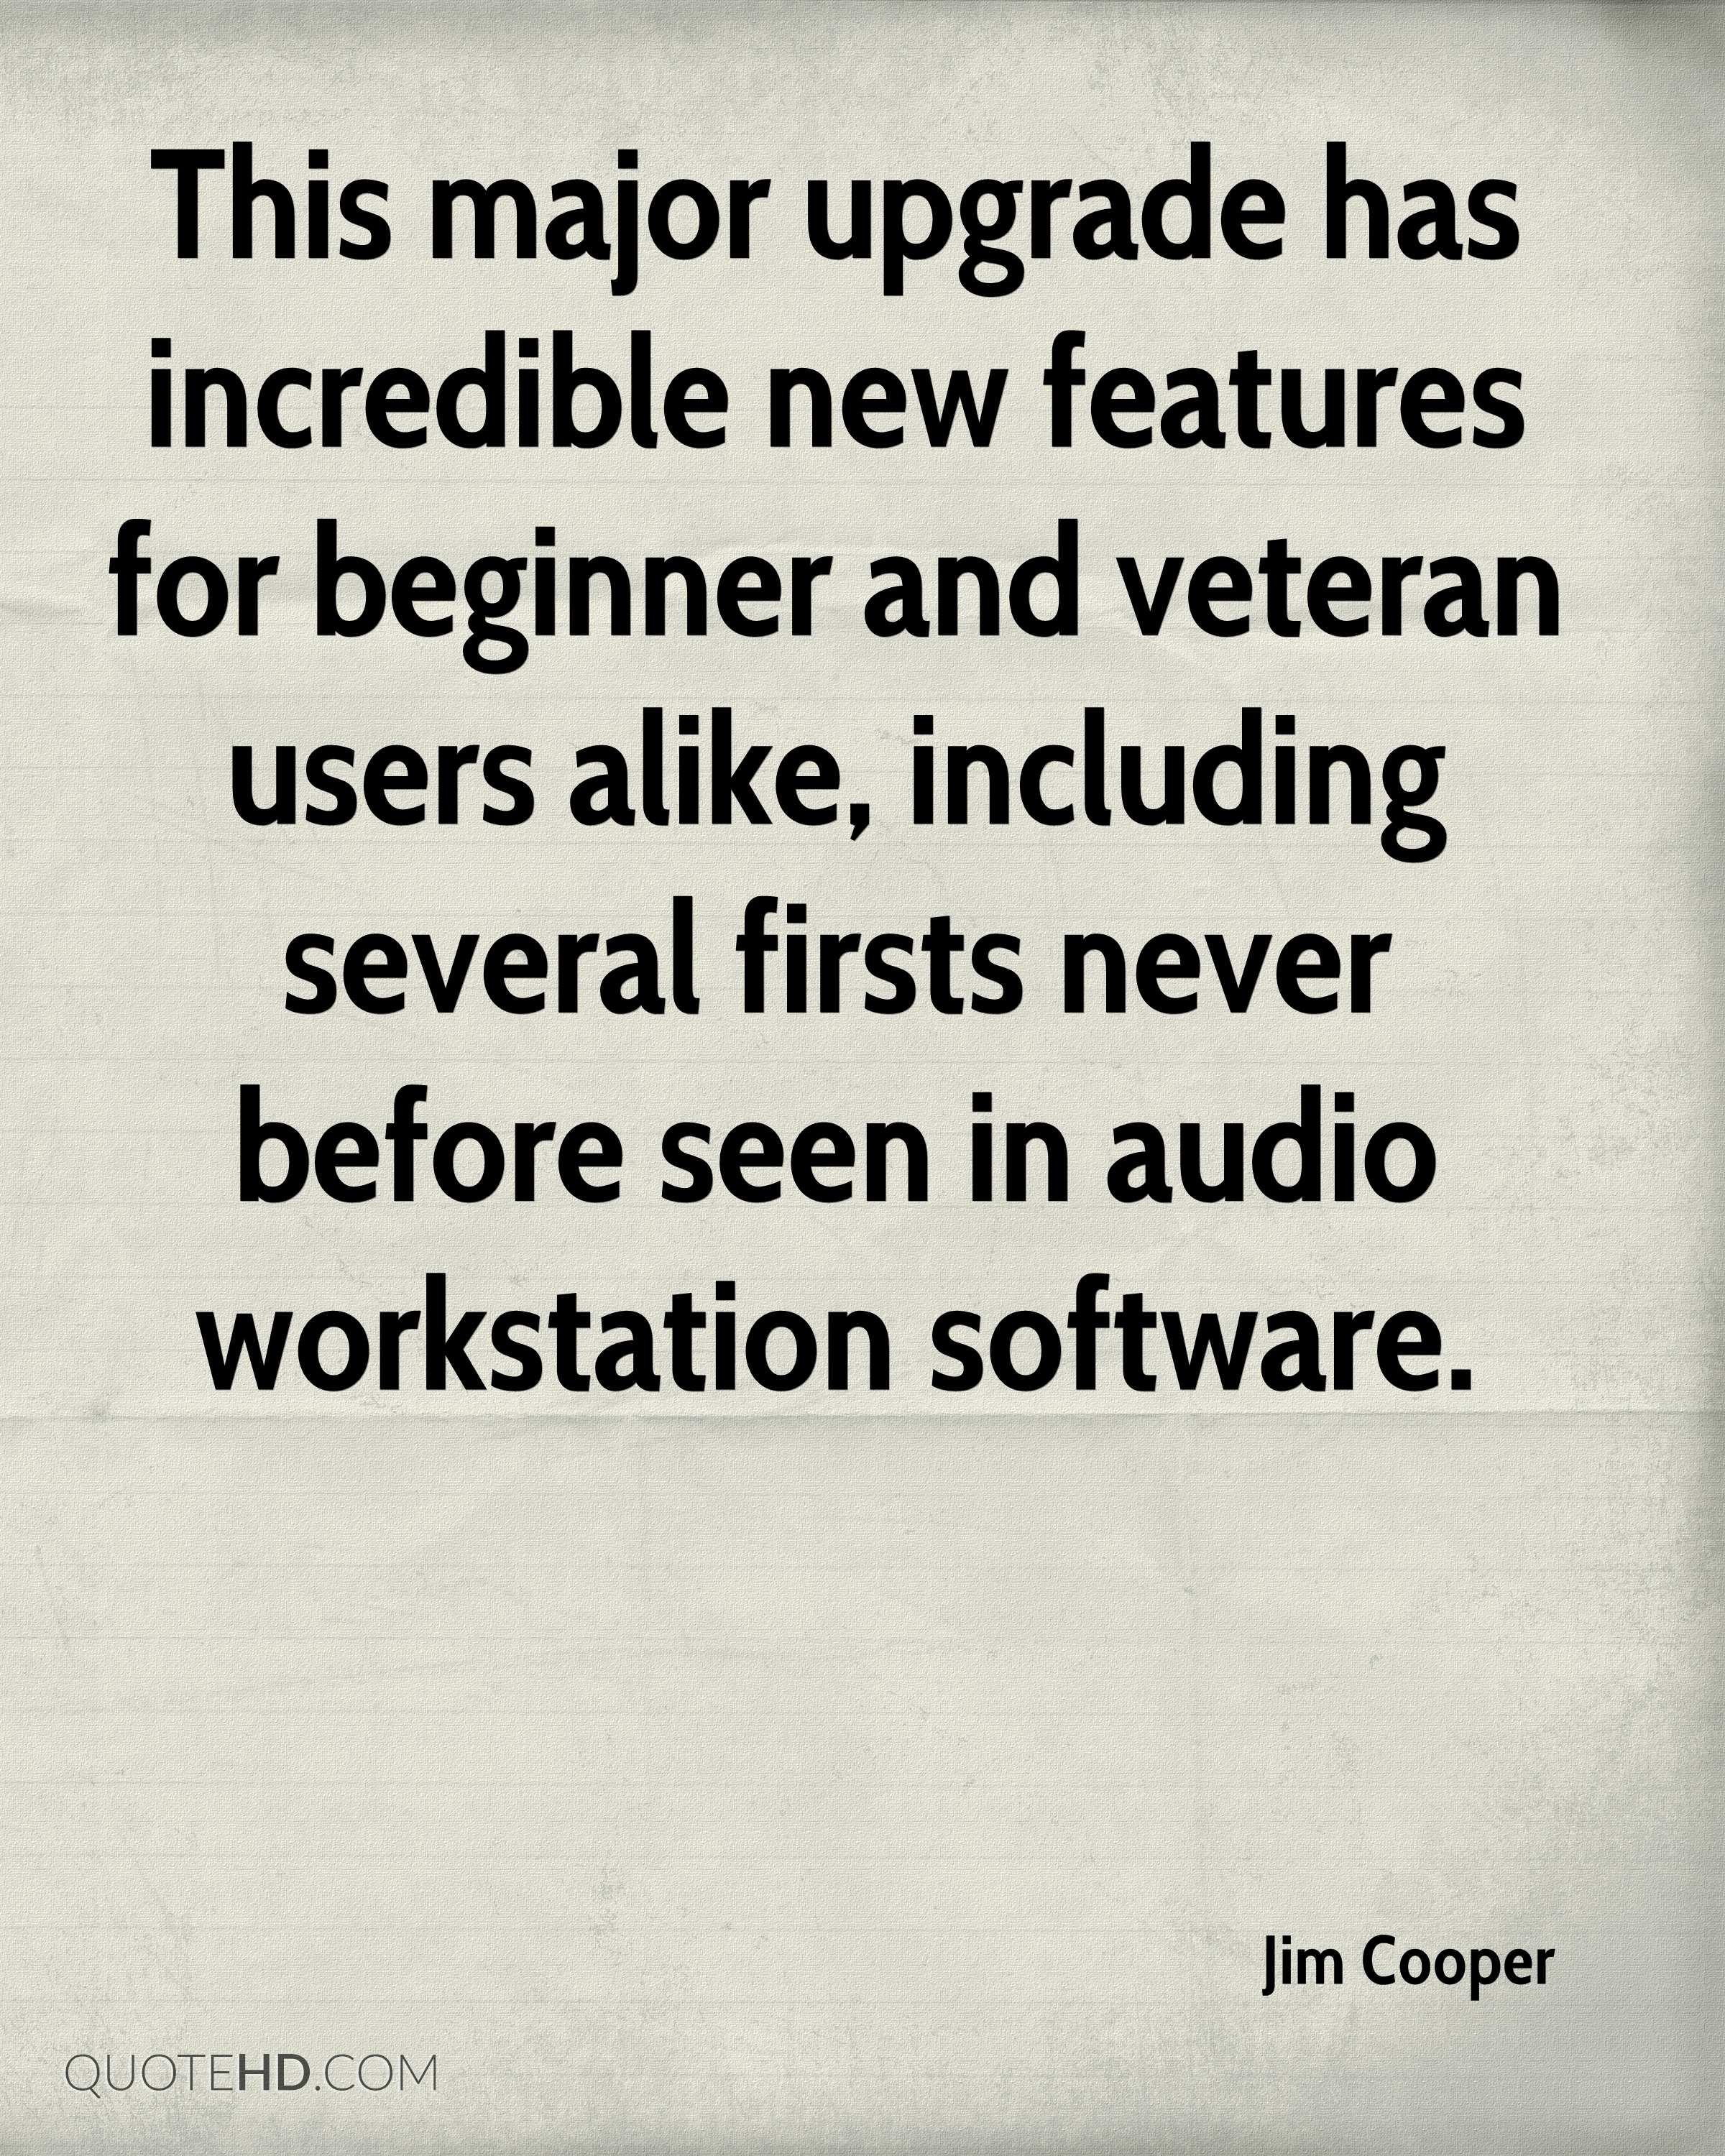 This major upgrade has incredible new features for beginner and veteran users alike, including several firsts never before seen in audio workstation software.